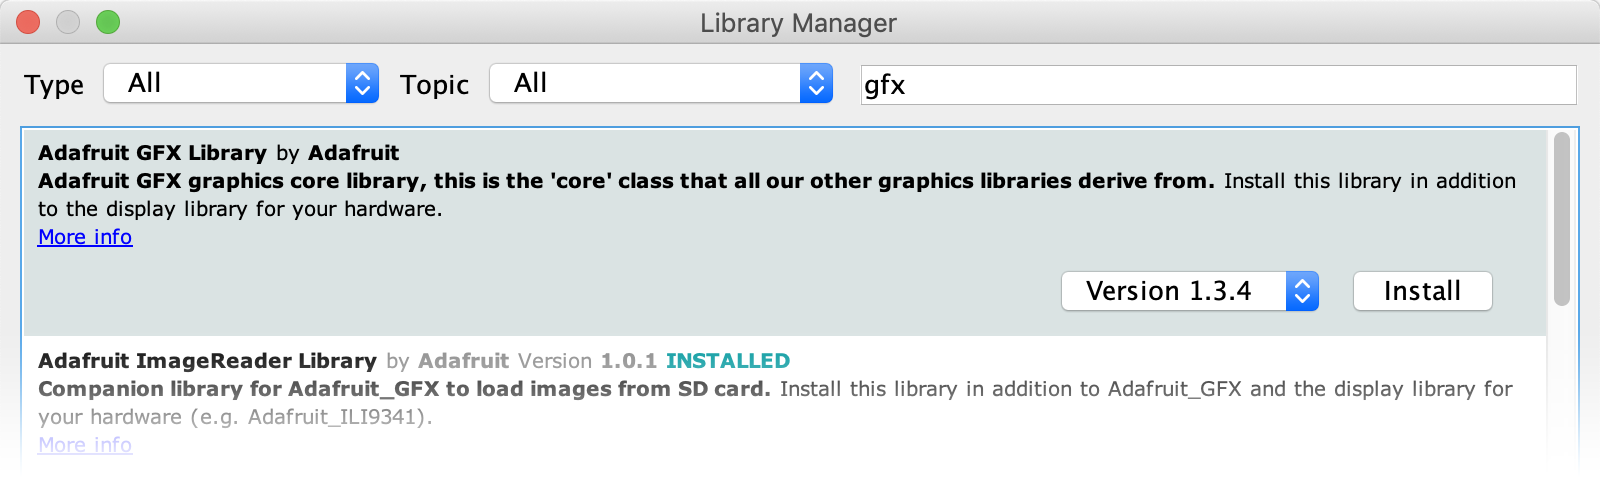 express_arduino_compatibles_adafruit-gfx-library-manager.png